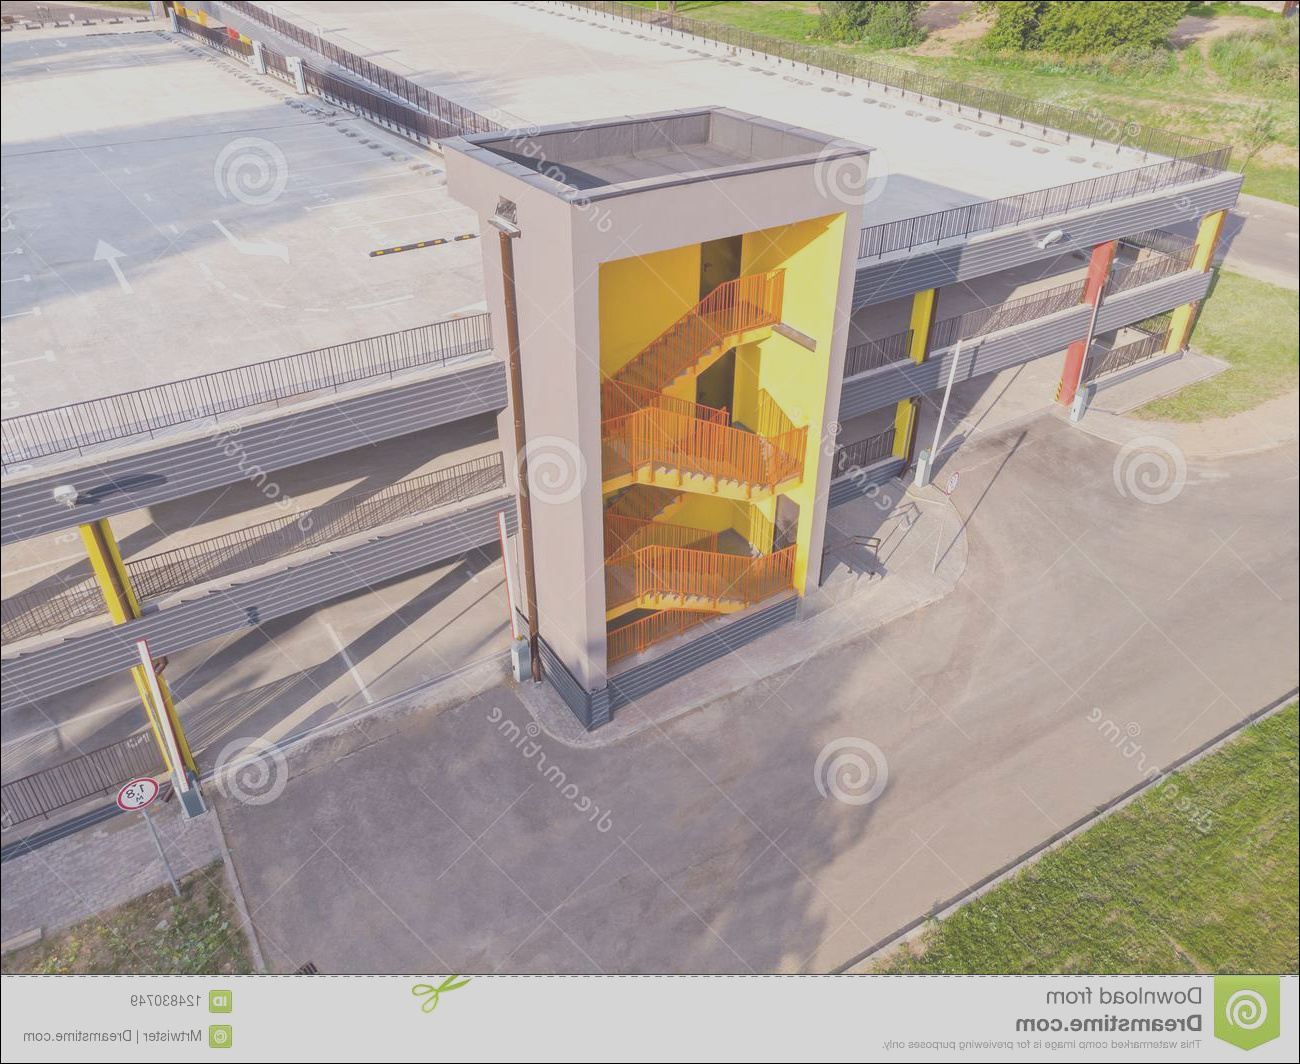 drone photo modern empty multilevel car parking emergency exit stairs aerial photo modern empty multilevel car parking image